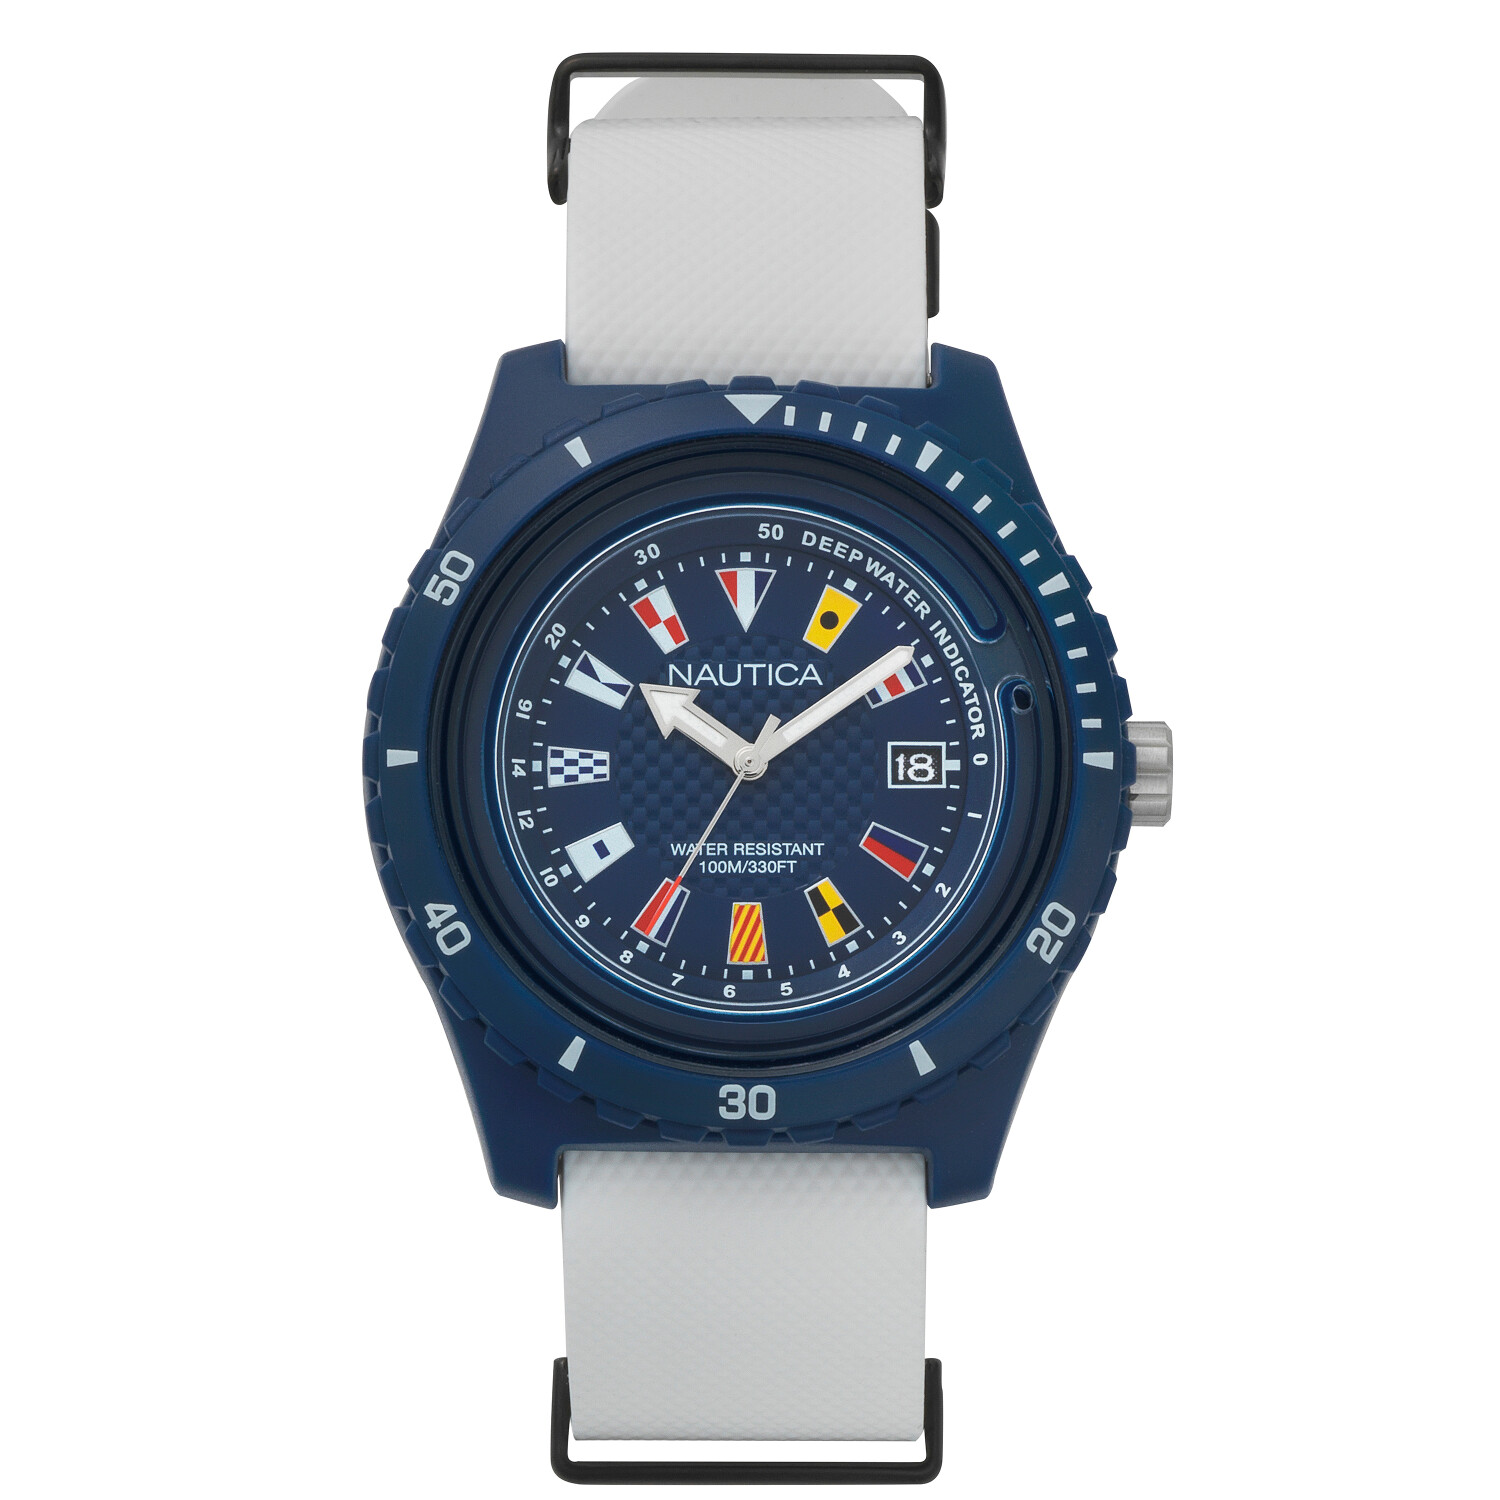 Nautica Watch NAPSRF002 Surfside, Analog, Water Resistant, Deep Water Indicator, Calendar, Signal Flag Indexes, Silicone Strap, Blue